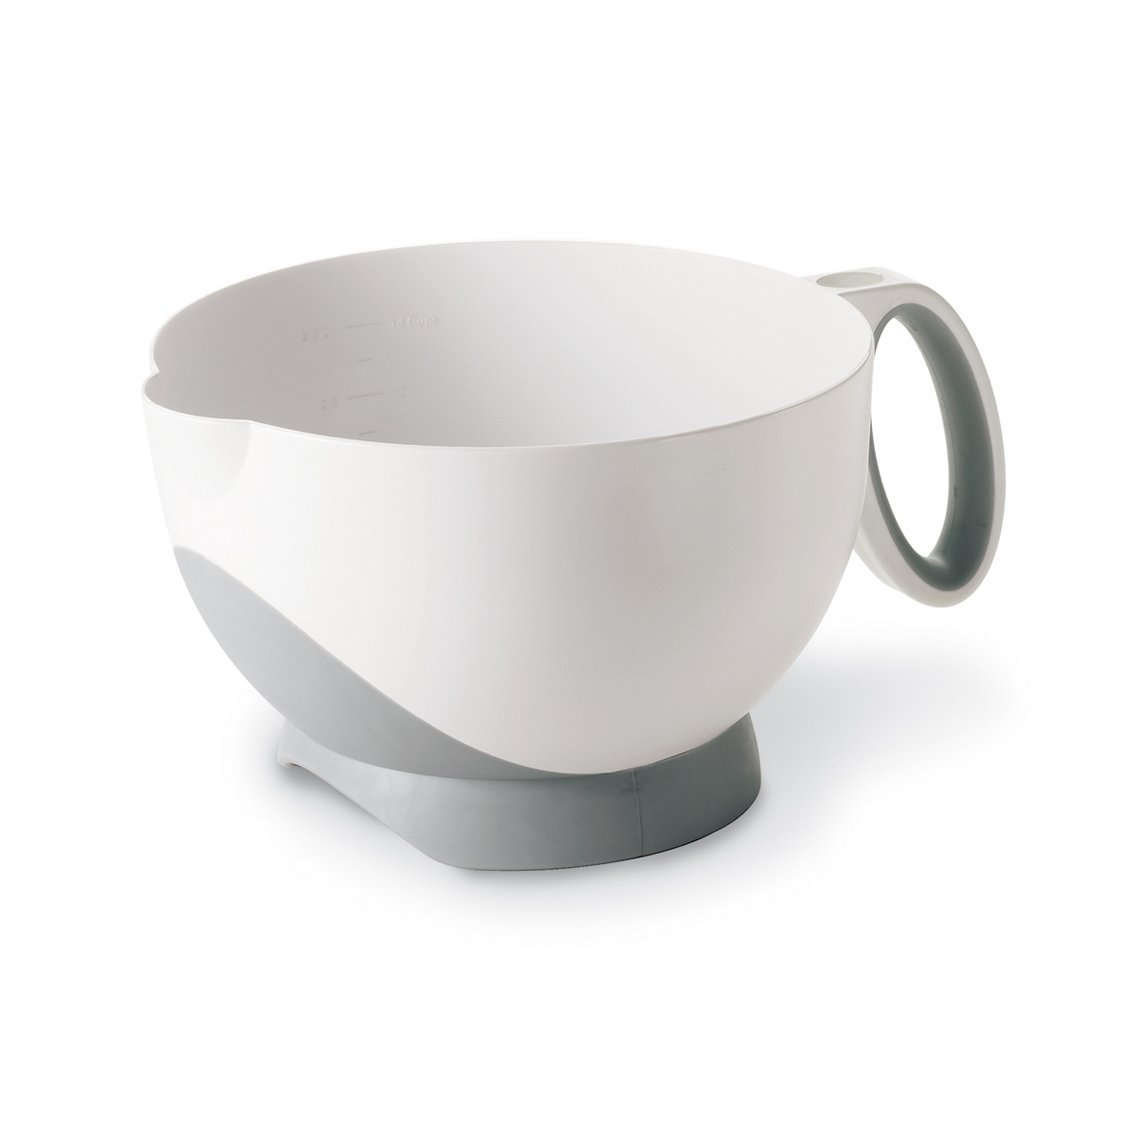 Cuisipro Deluxe Batter Bowl | Grey